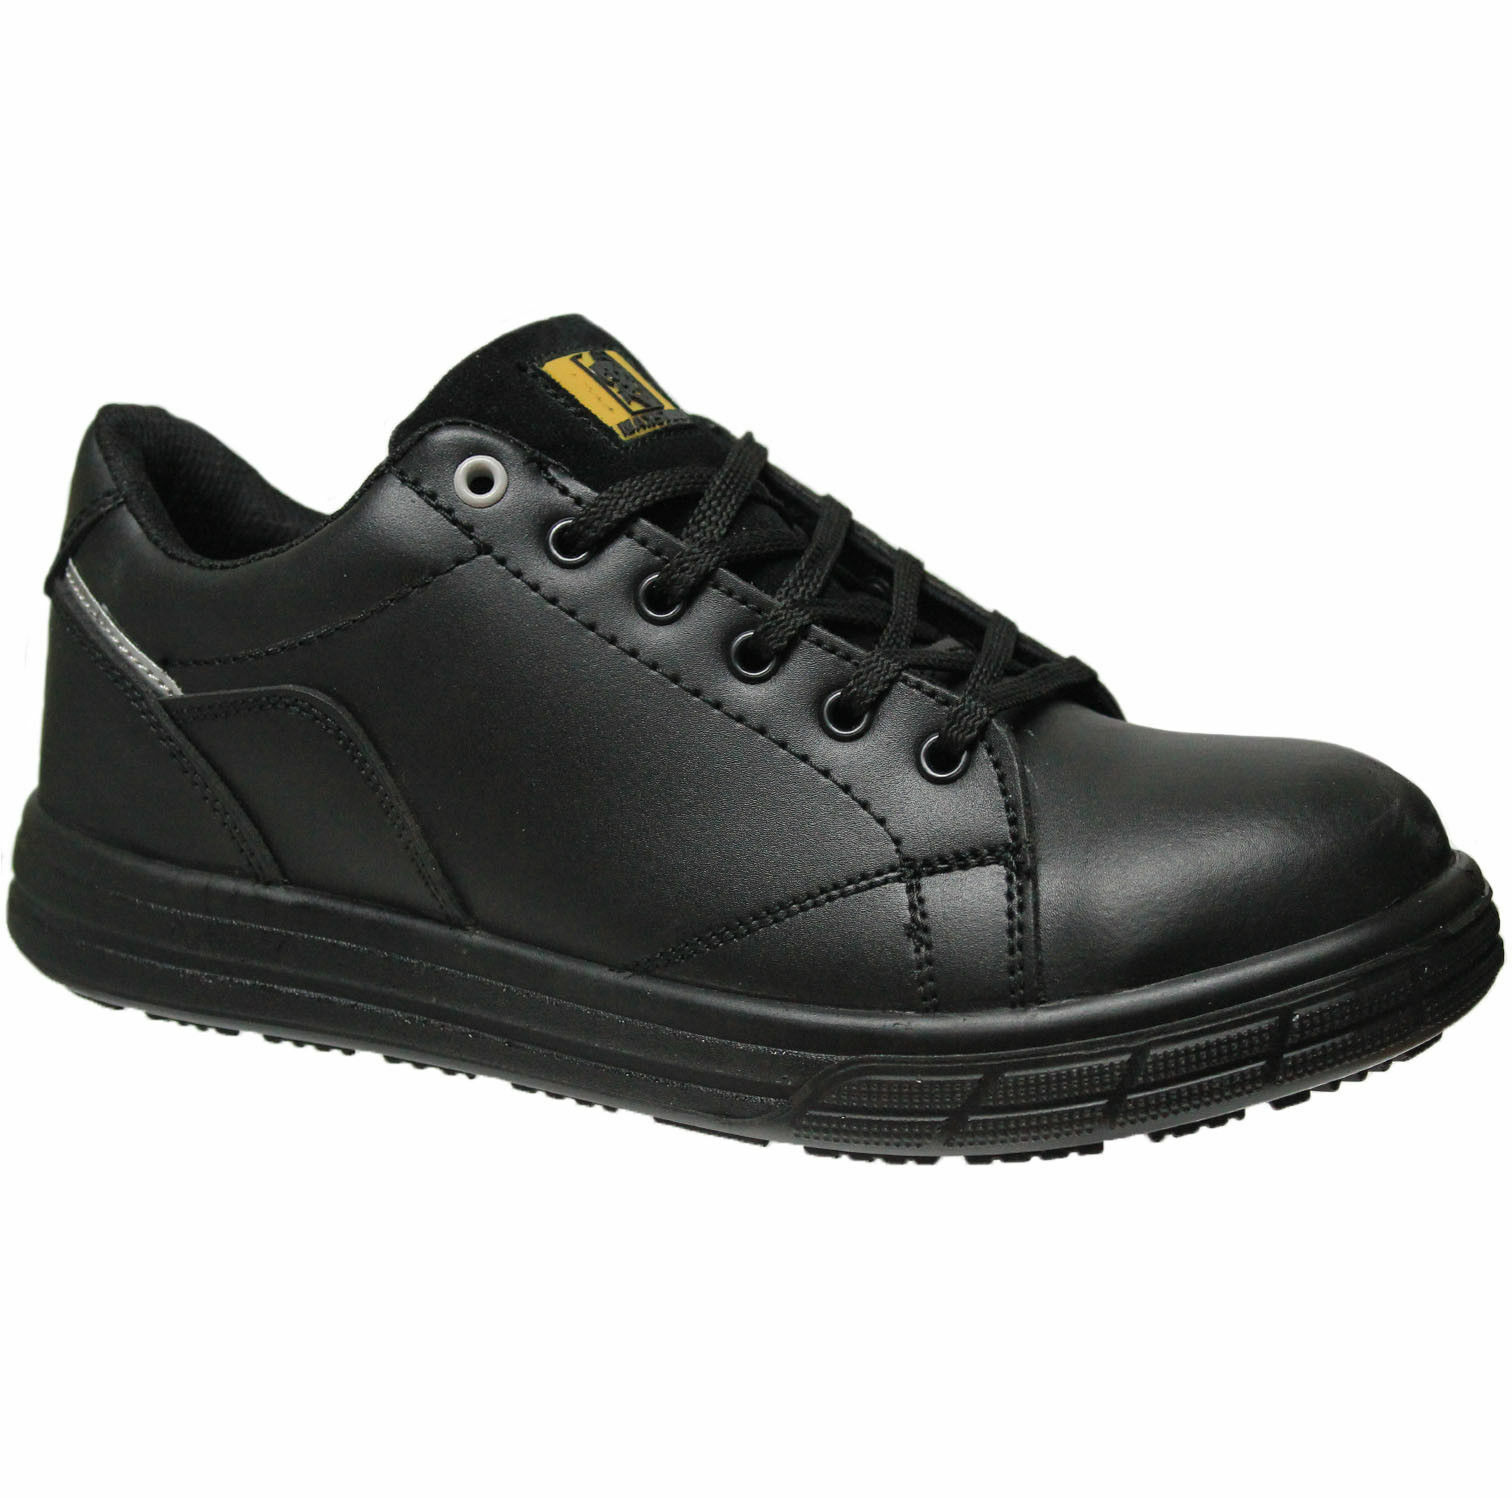 MENS BLACK LEATHER LIGHT WEIGHT SKATER WORK SAFETY STEEL TOE CAP TRAINERS SZ8